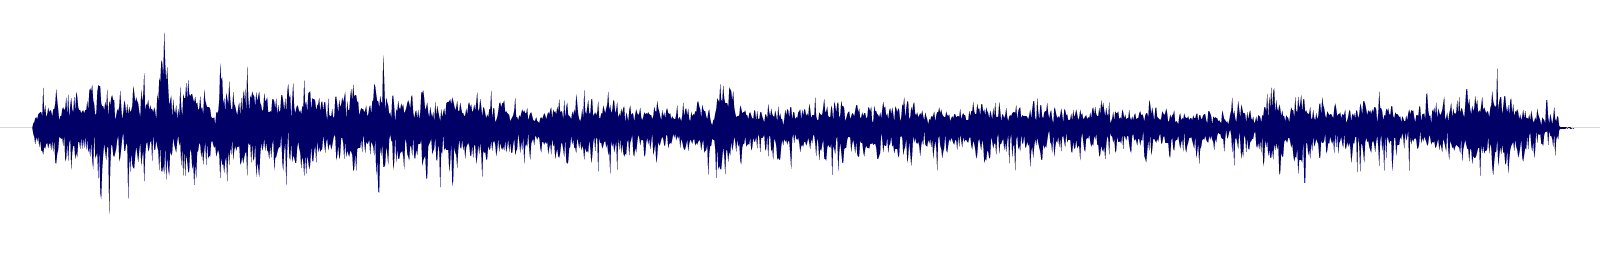 waveform of track #143925